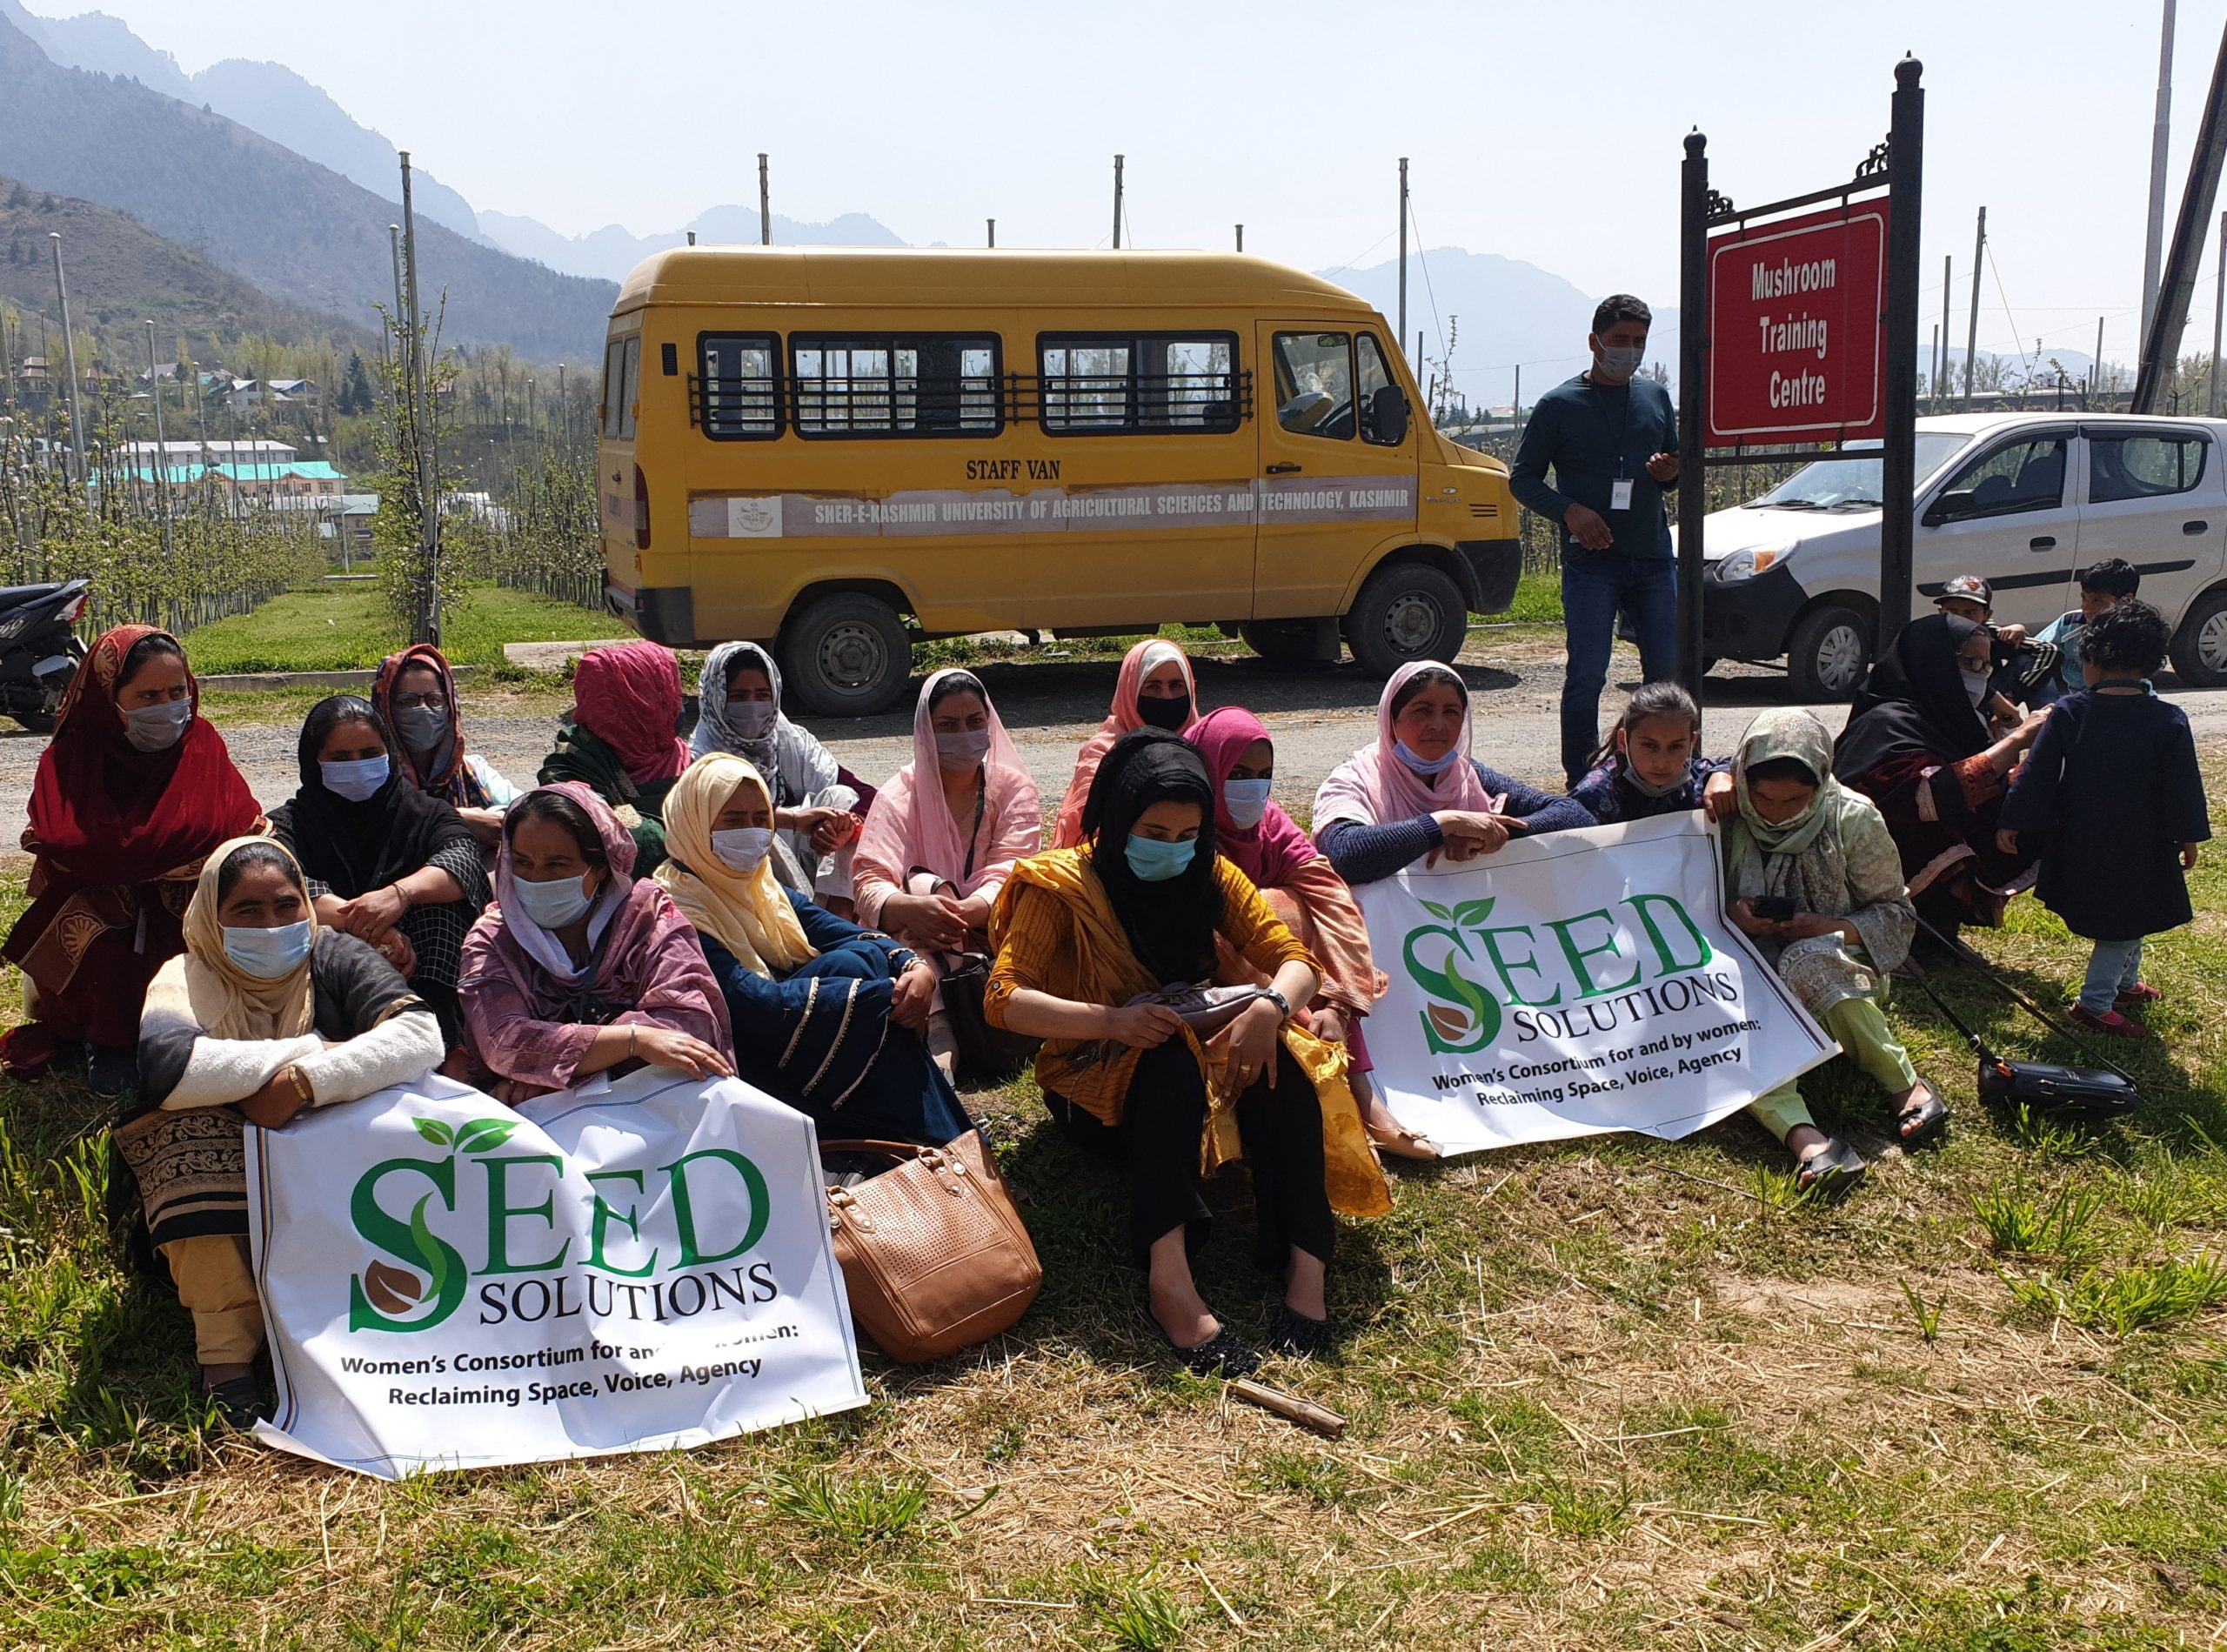 Women's consortium for and by women in J&K